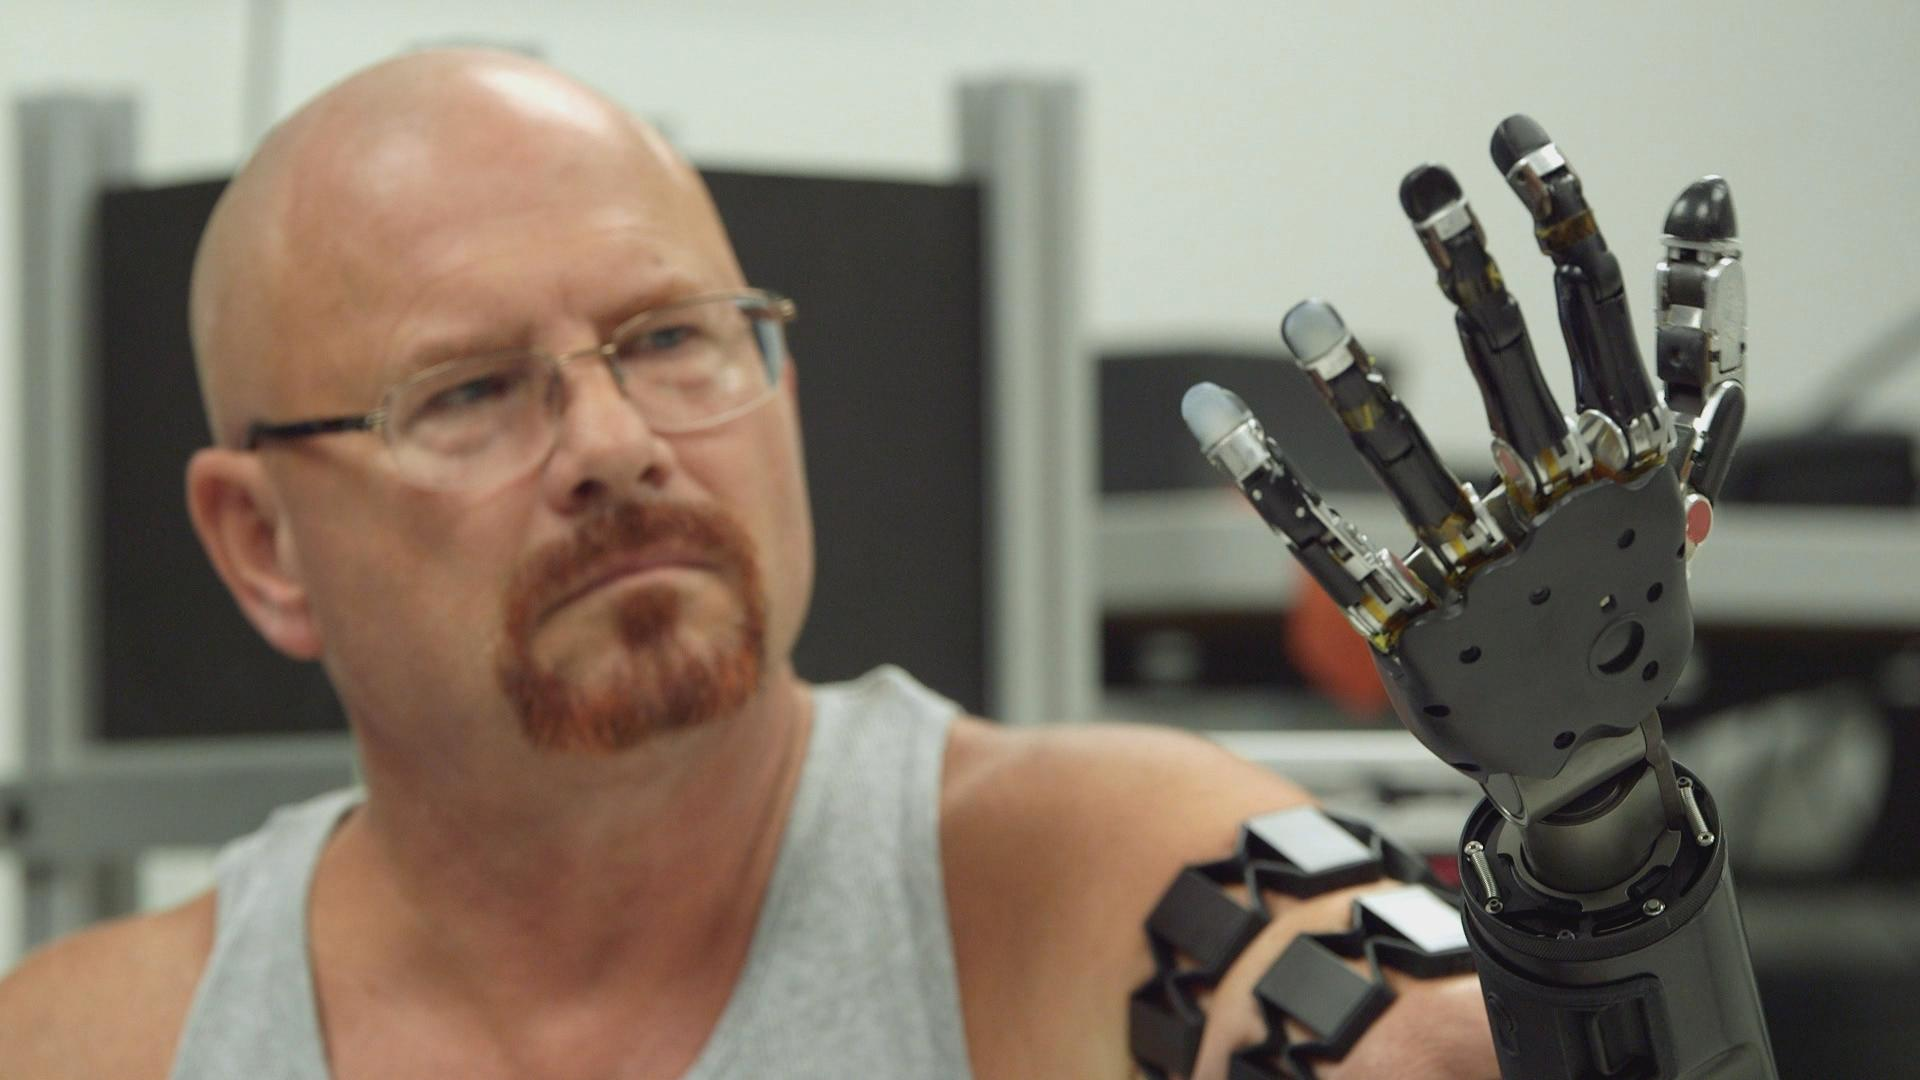 Johnny-Matheny_robotic-prosthetic-arm